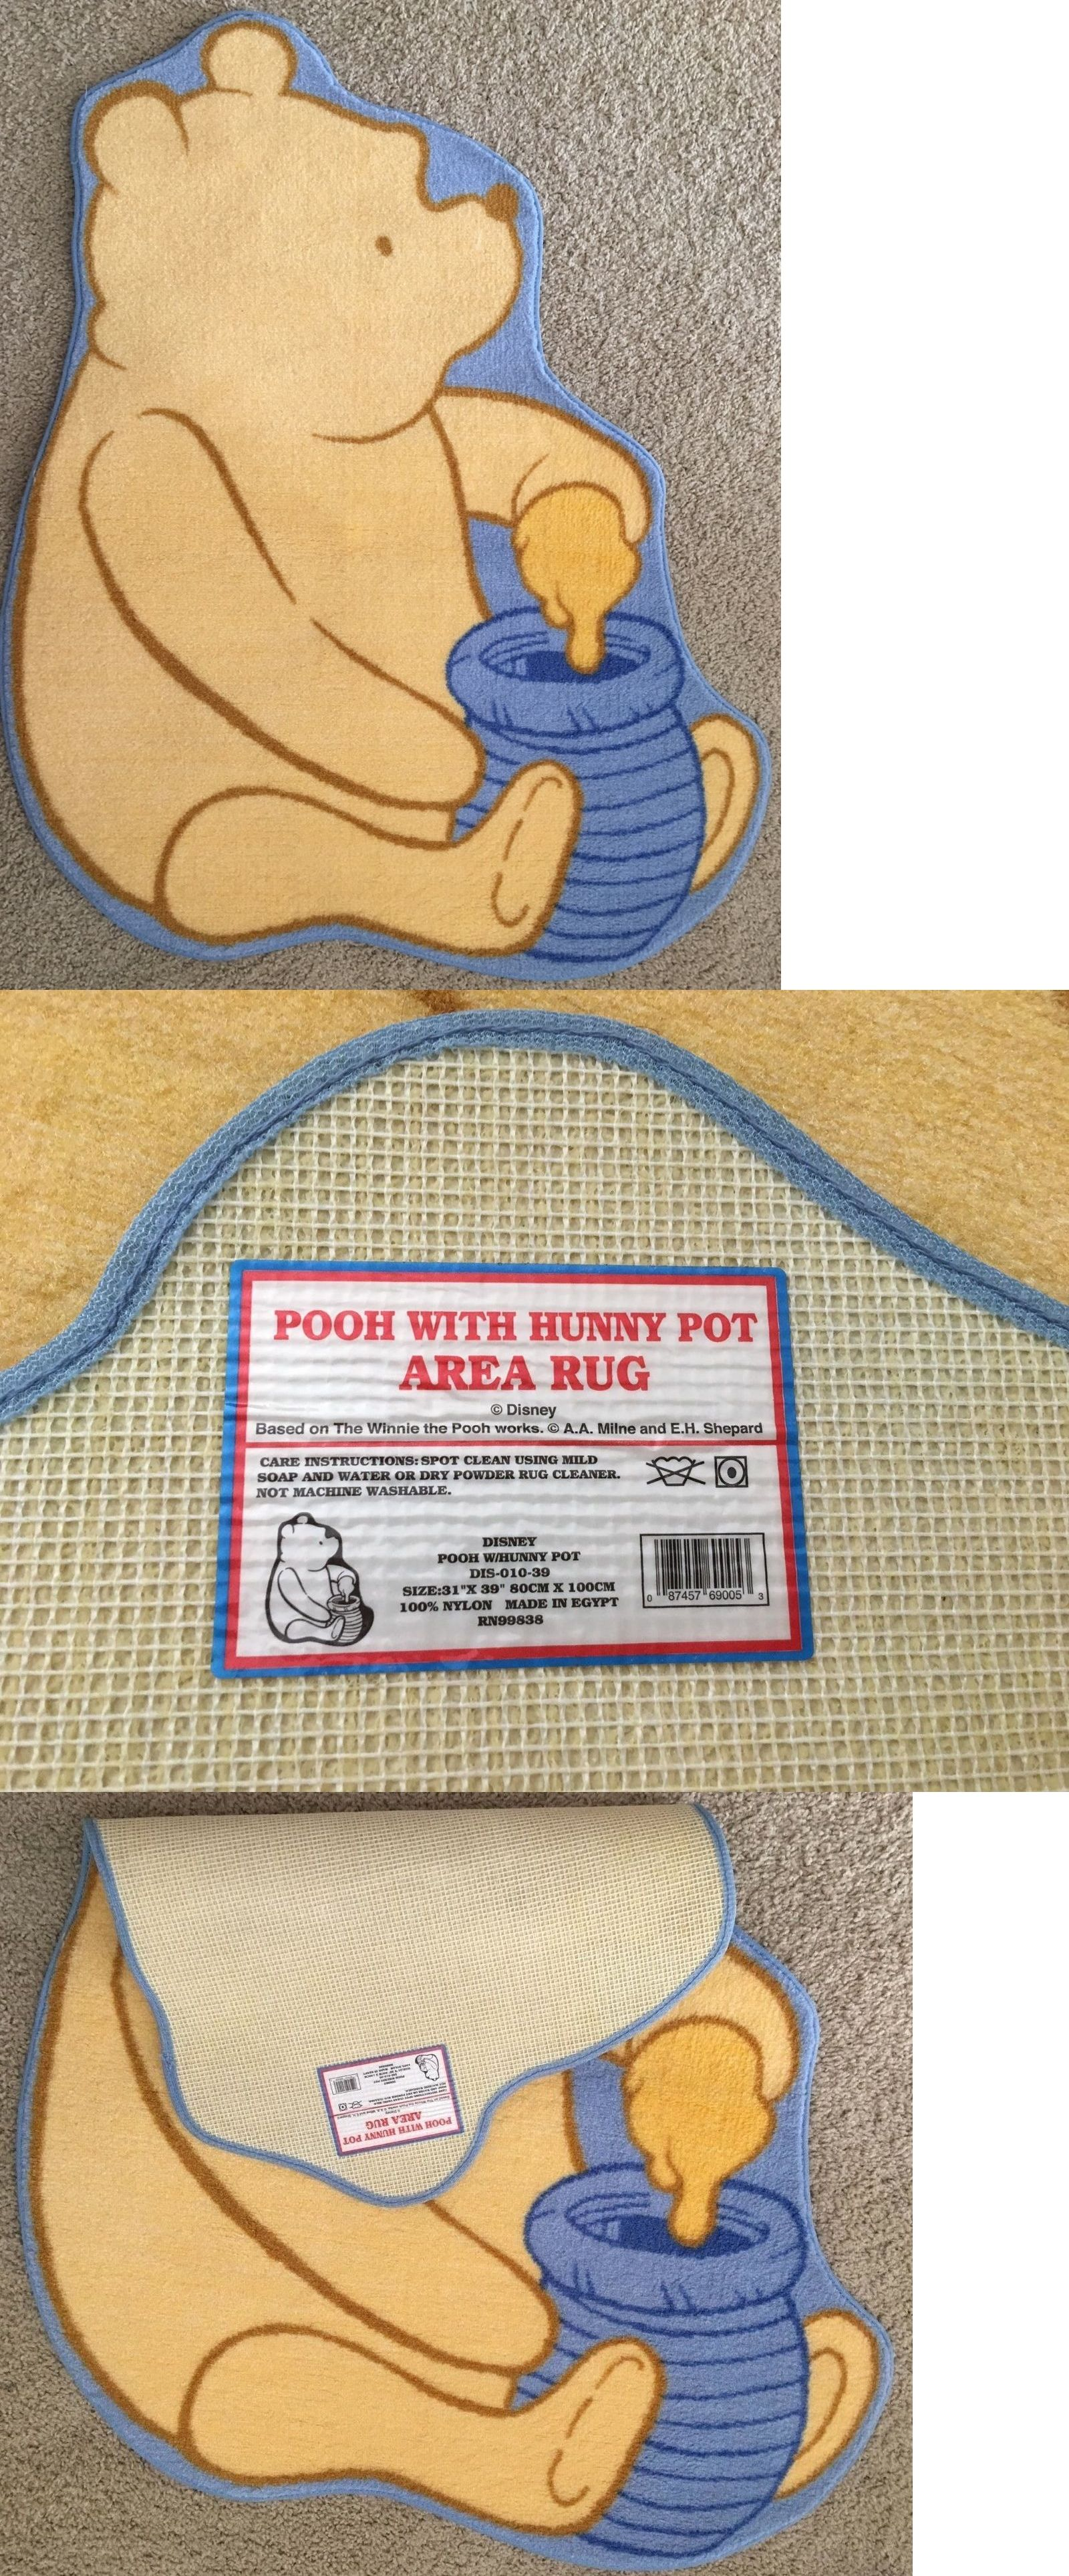 Winnie the Pooh Disney Pooh With Hunny Pot Area Rug Carpet 31